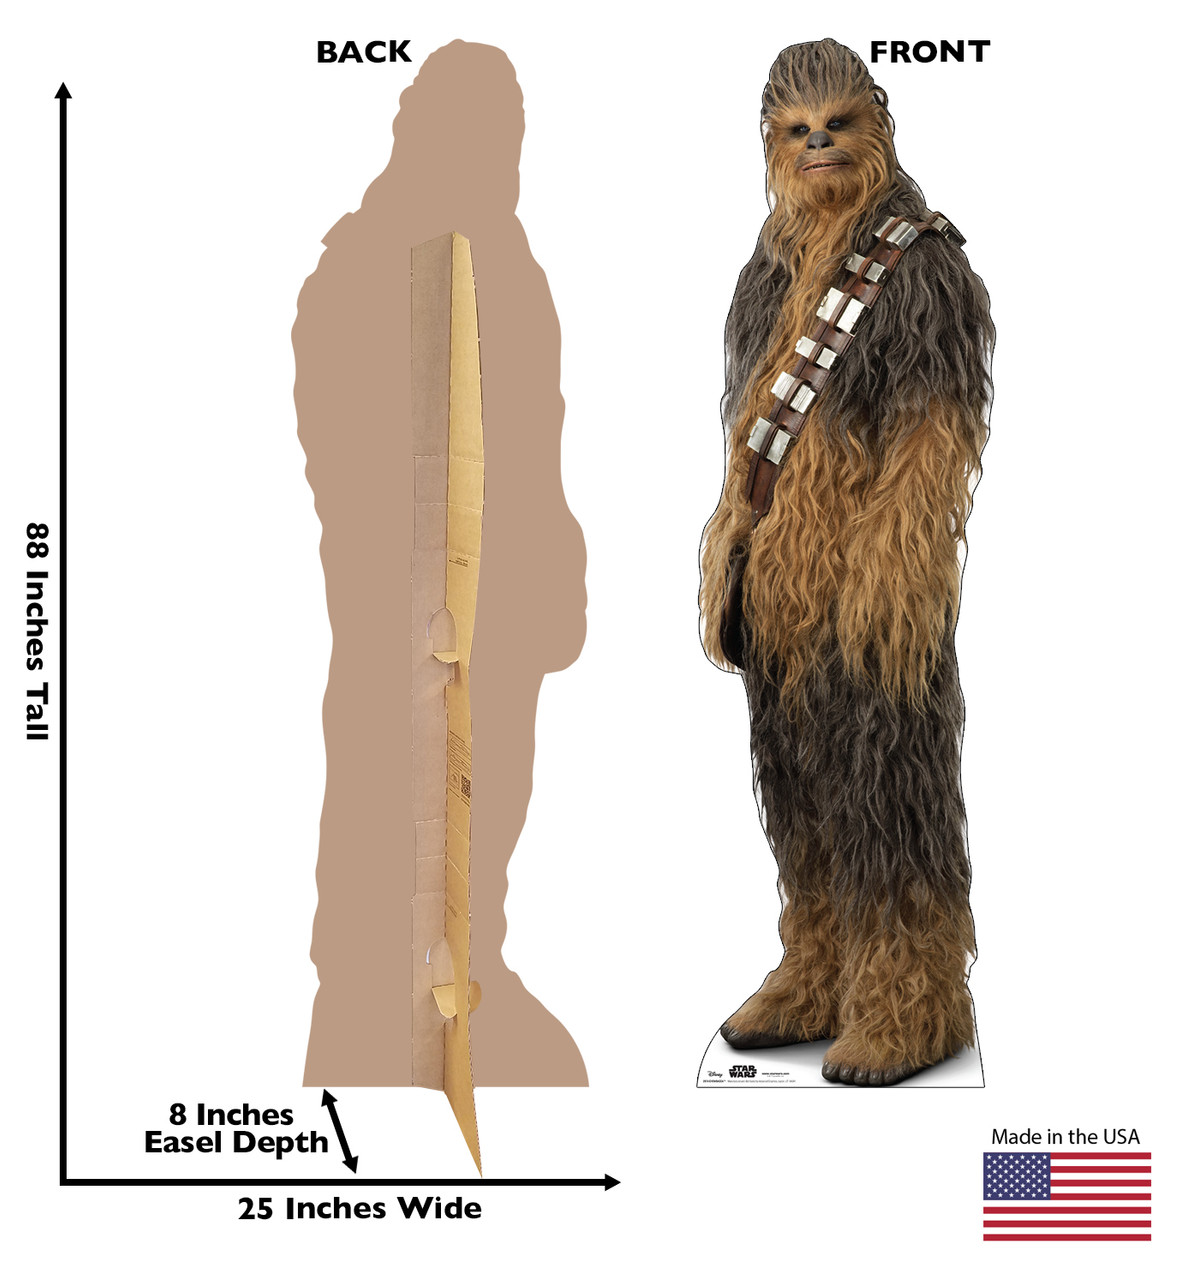 Life-size cardboard standee of Chewbacca™ (Star Wars IX) with back and front dimensions.